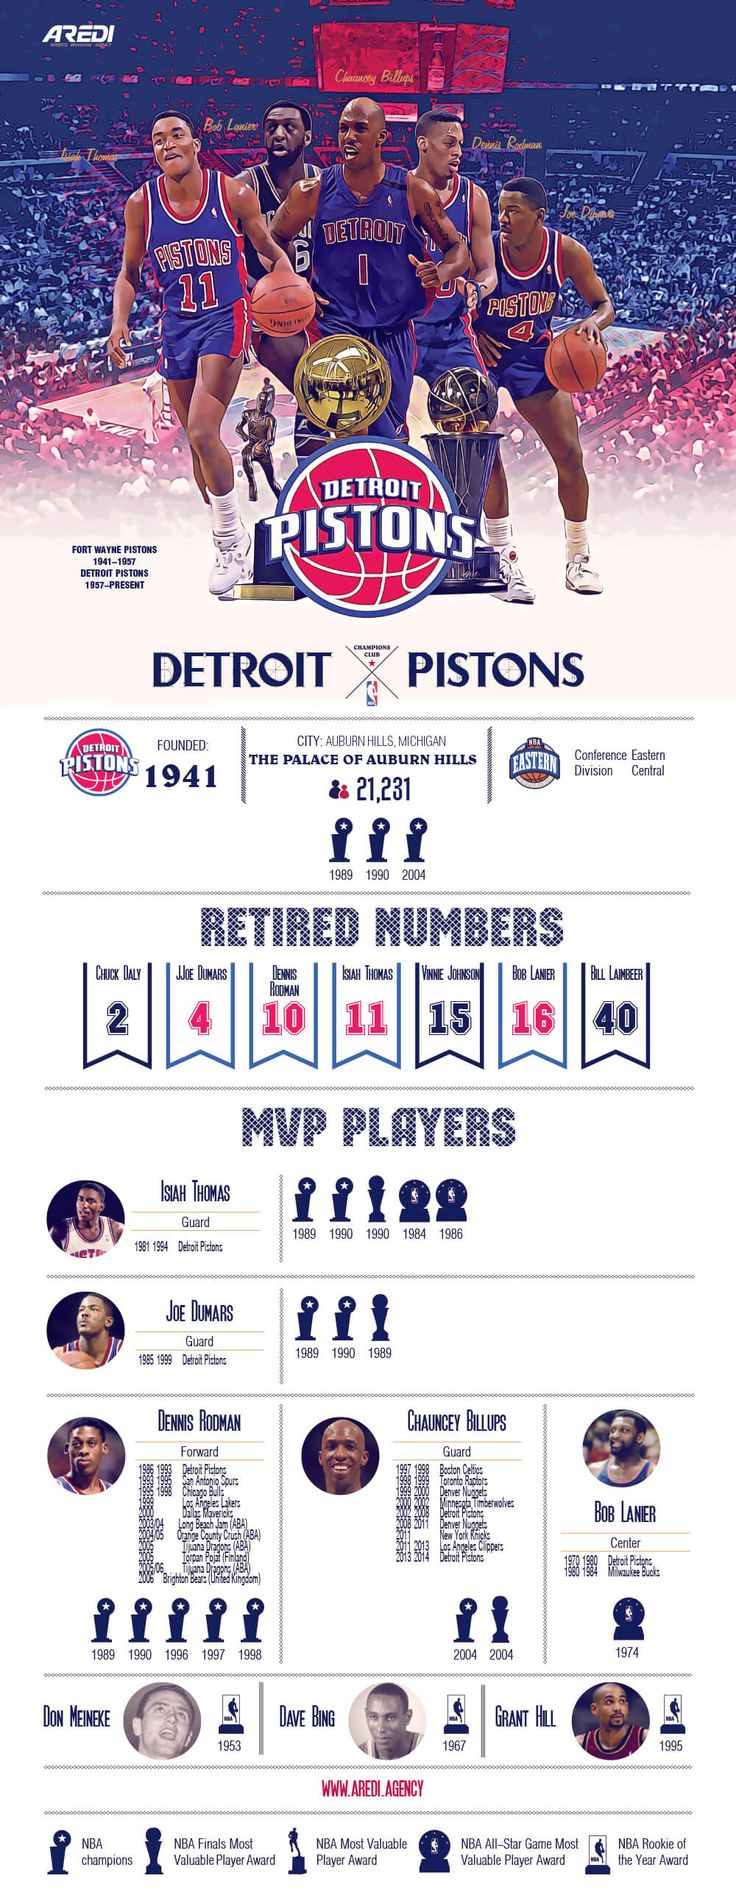 Detroit Pistons, Pistons, infographic, art, sport, create, design, basketball, club, champion, branding, NBA, MVP legends, histoty, All Star game, Isiah Thomas, Joe Dumars, Dennis Rodman, Chauncey Billups, Bob Lanier, Don Meineke, Dave Bing, Grant Hill